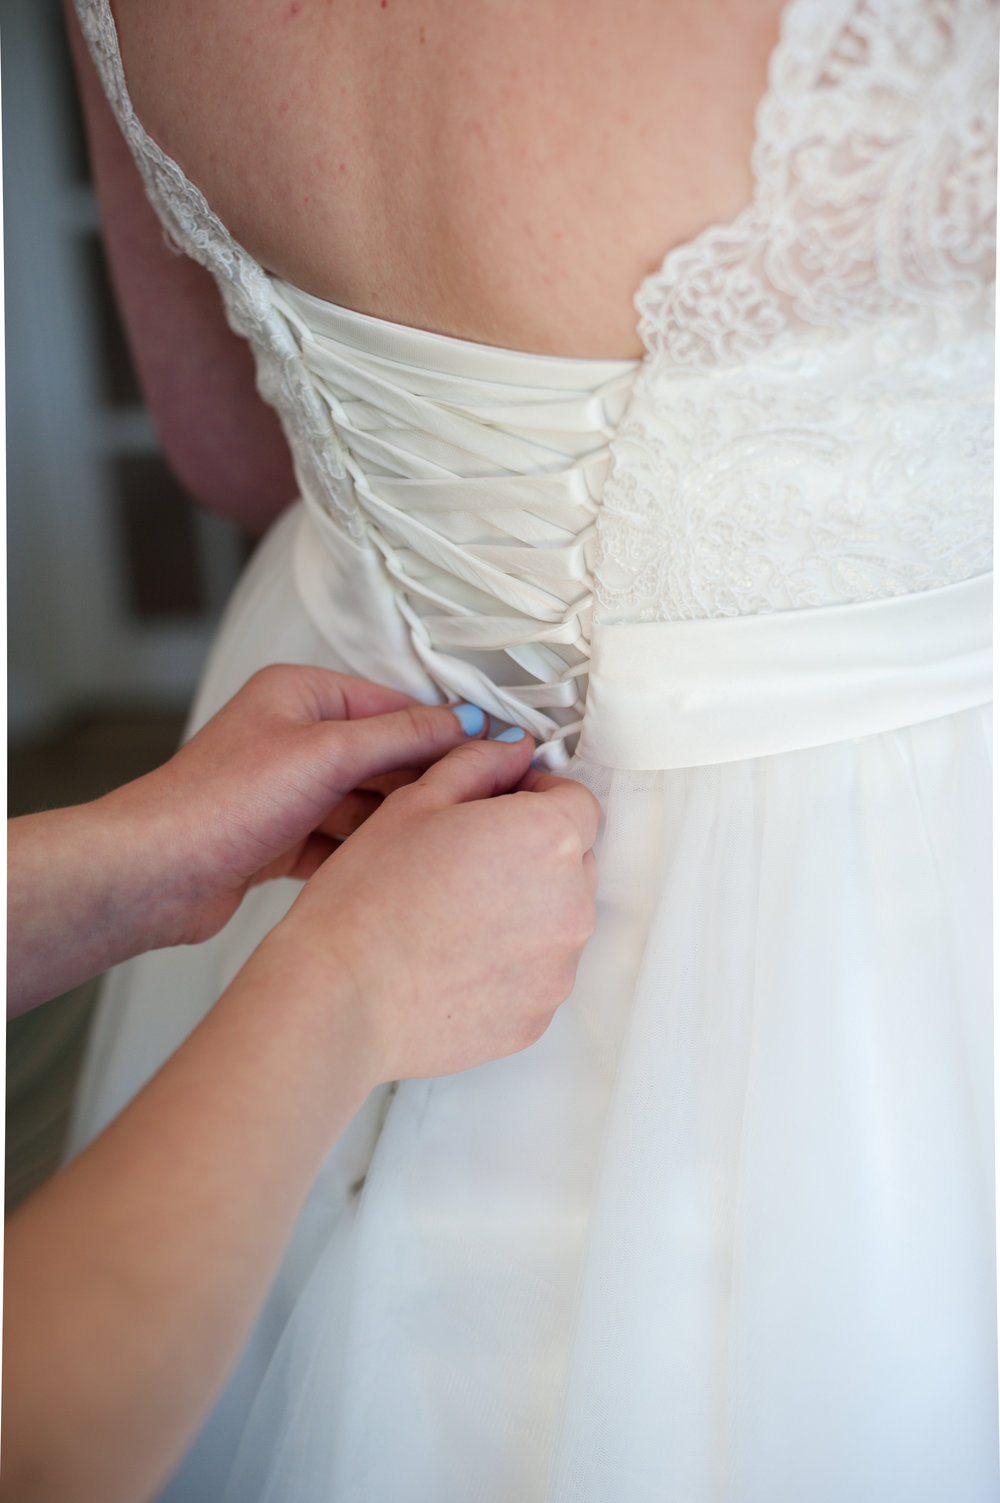 Hertfordshire Wedding Photographer - Hertford County Hall - Bridal prep - lacing up the dress - wedding dress laced